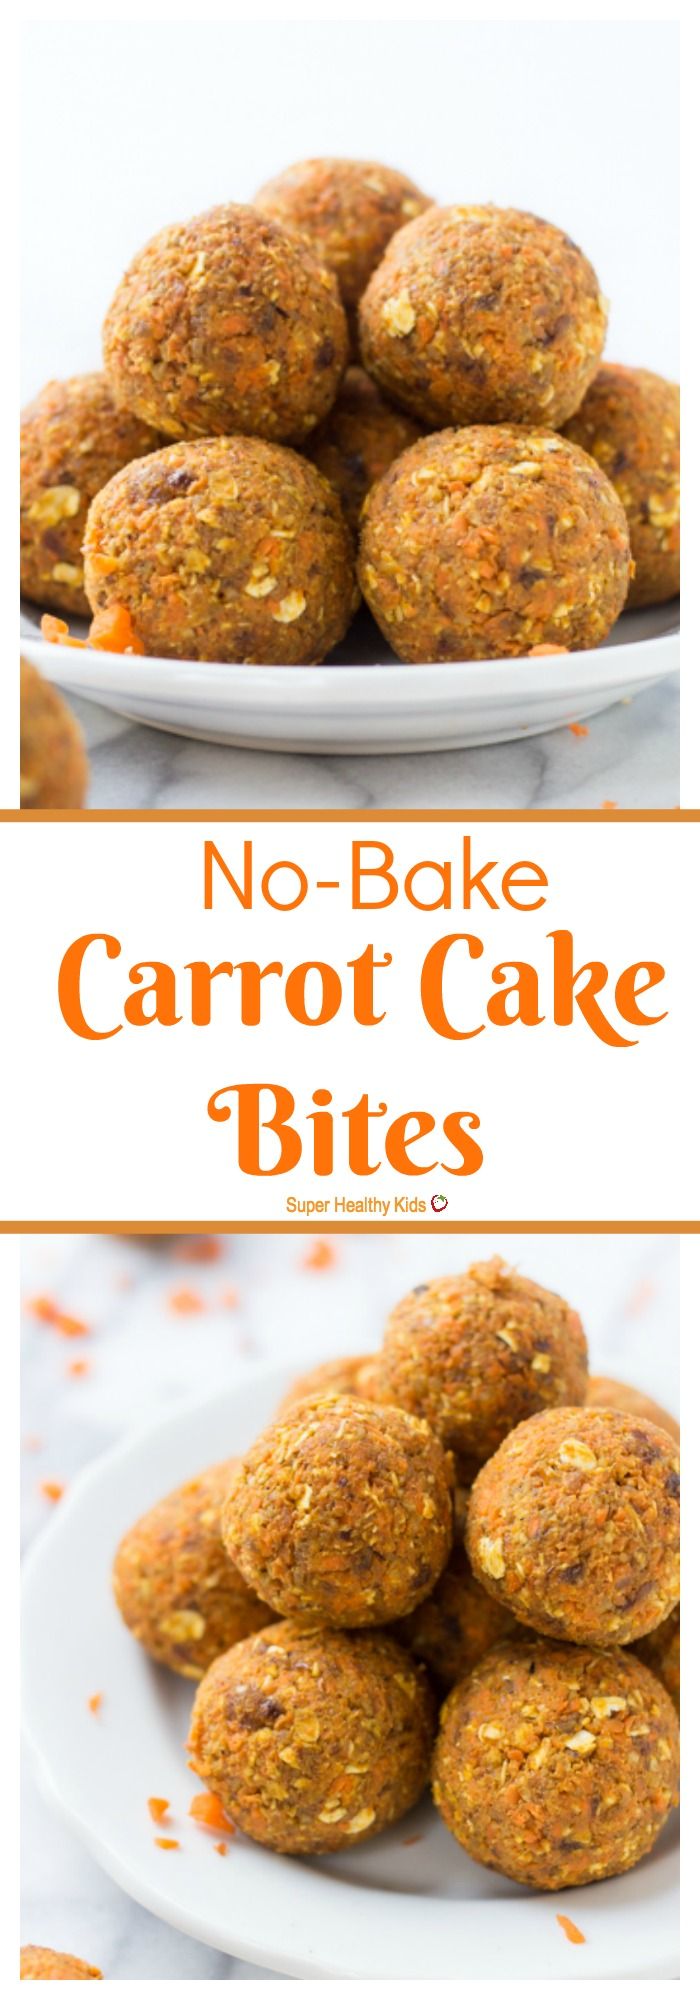 FOOD - No-Bake Carrot Cake Bites. A healthy, kid-friendly snack that is secretly packed with veggies and still tastes like dessert! http://www.superhealthykids.com/no-bake-carrot-cake-bites/